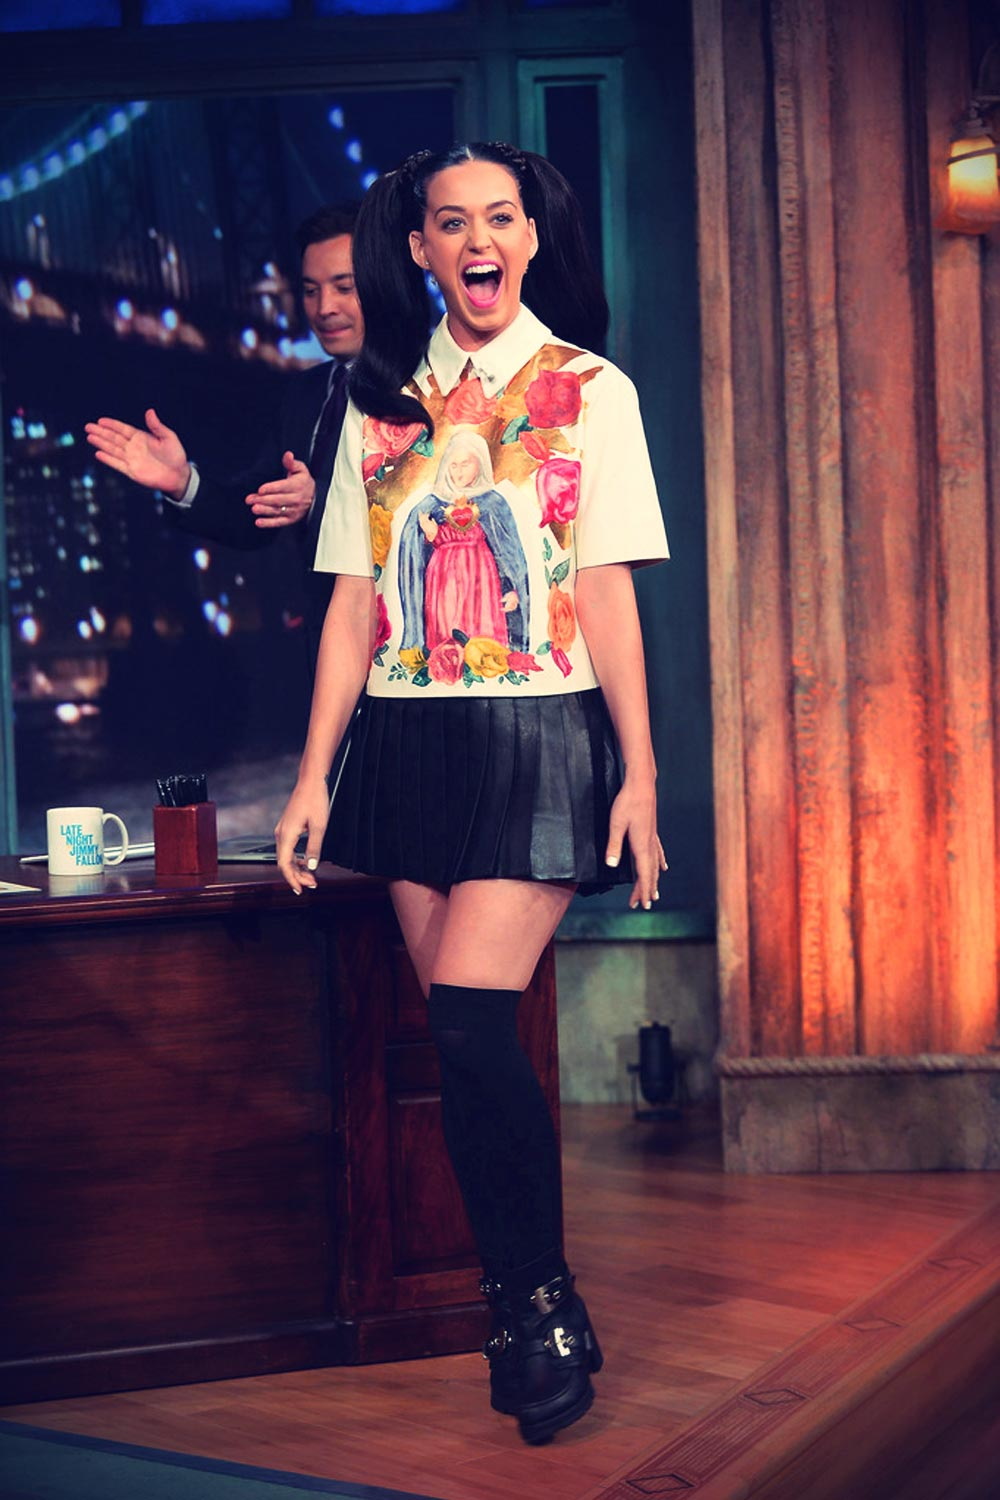 Katy Perry at Late Night with Jimmy Fallon appearance